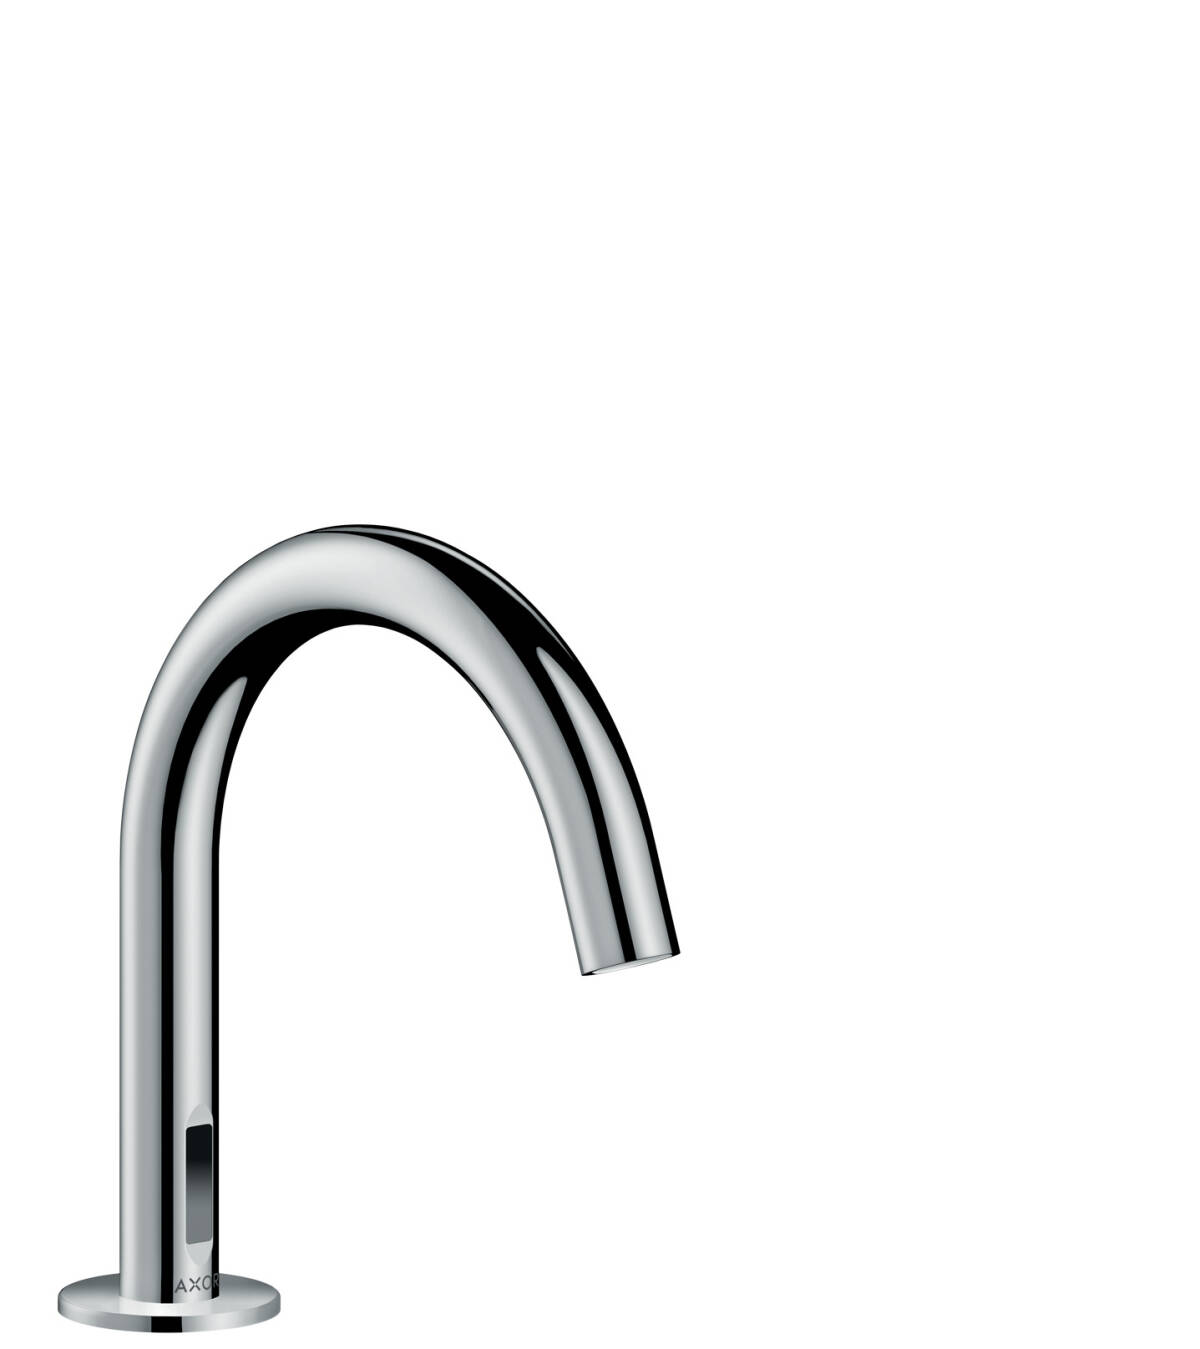 Electronic basin mixer with temperature pre-adjustment with mains connection 230 V, Chrome, 38010000